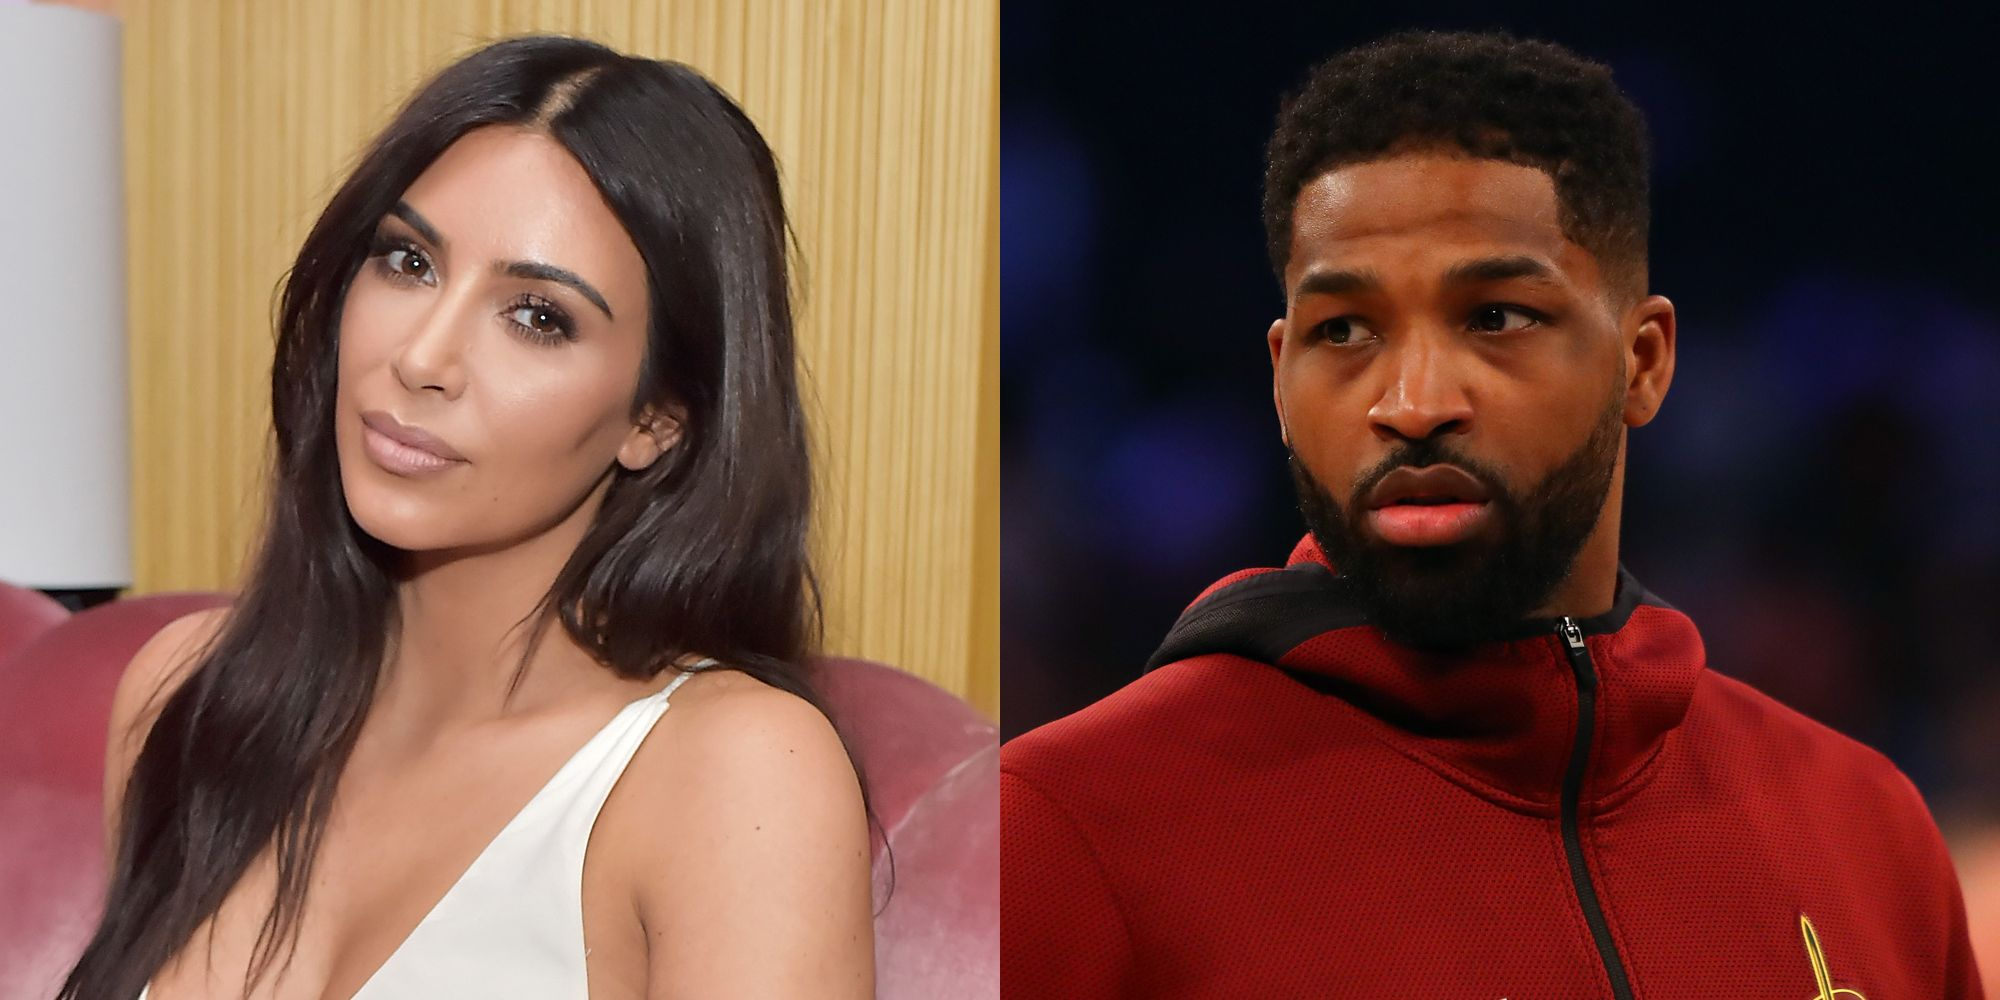 Drama Alert: Kim Kardashian Just Unfollowed Khloé Kardashians Boyfriend Tristan Thompson